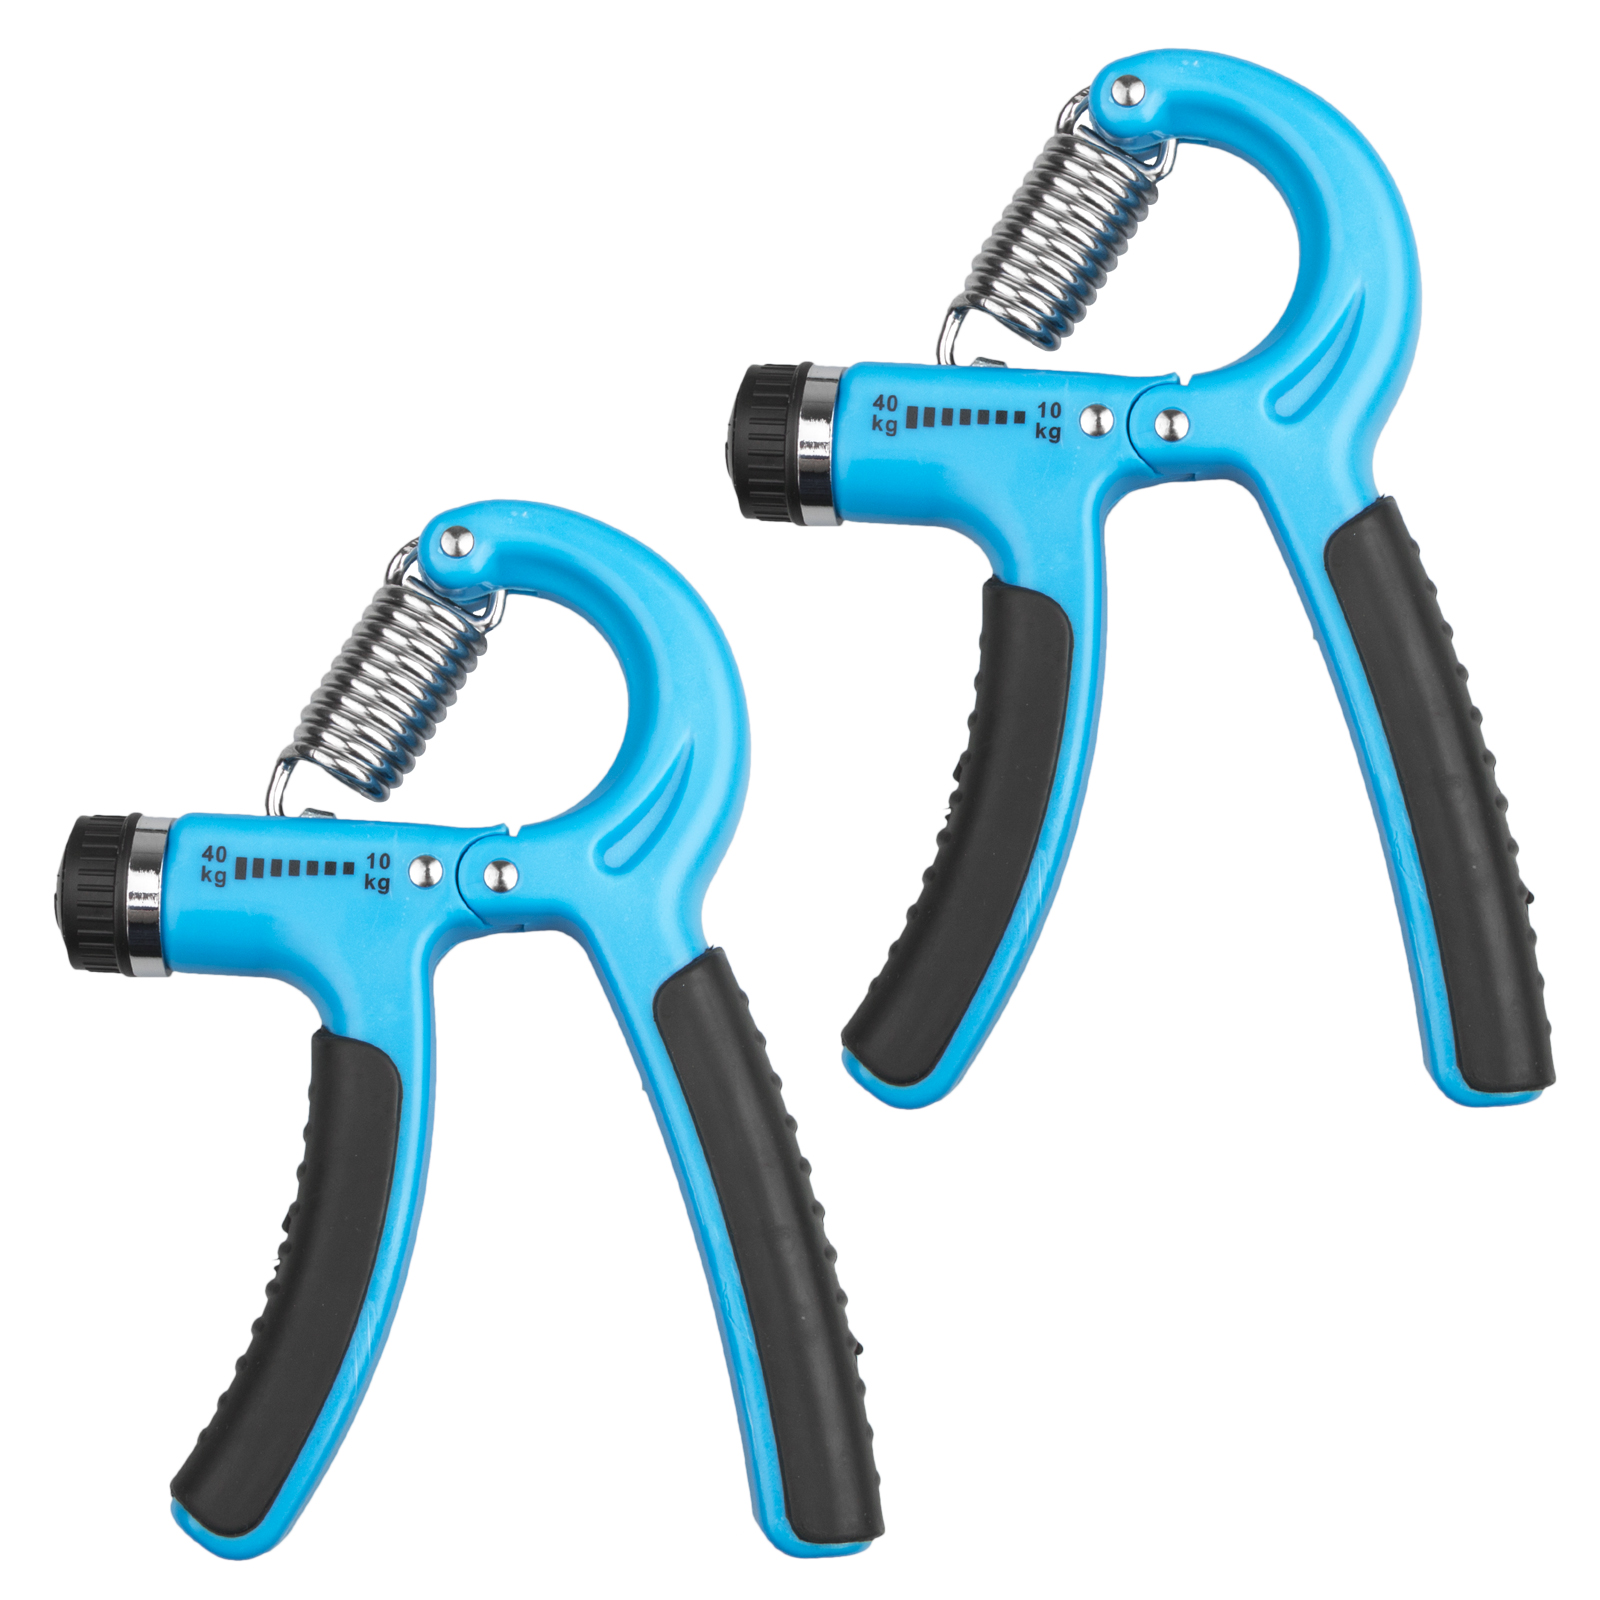 2-Pack Different Resistance (22-88 Lbs/11-132 Lbs) Hand Grip Strengthener Adjustable Strength Trainer for Men Forearm Grip Workout Non-Slip Gripper for Athletes Rock Climbers Kids etc